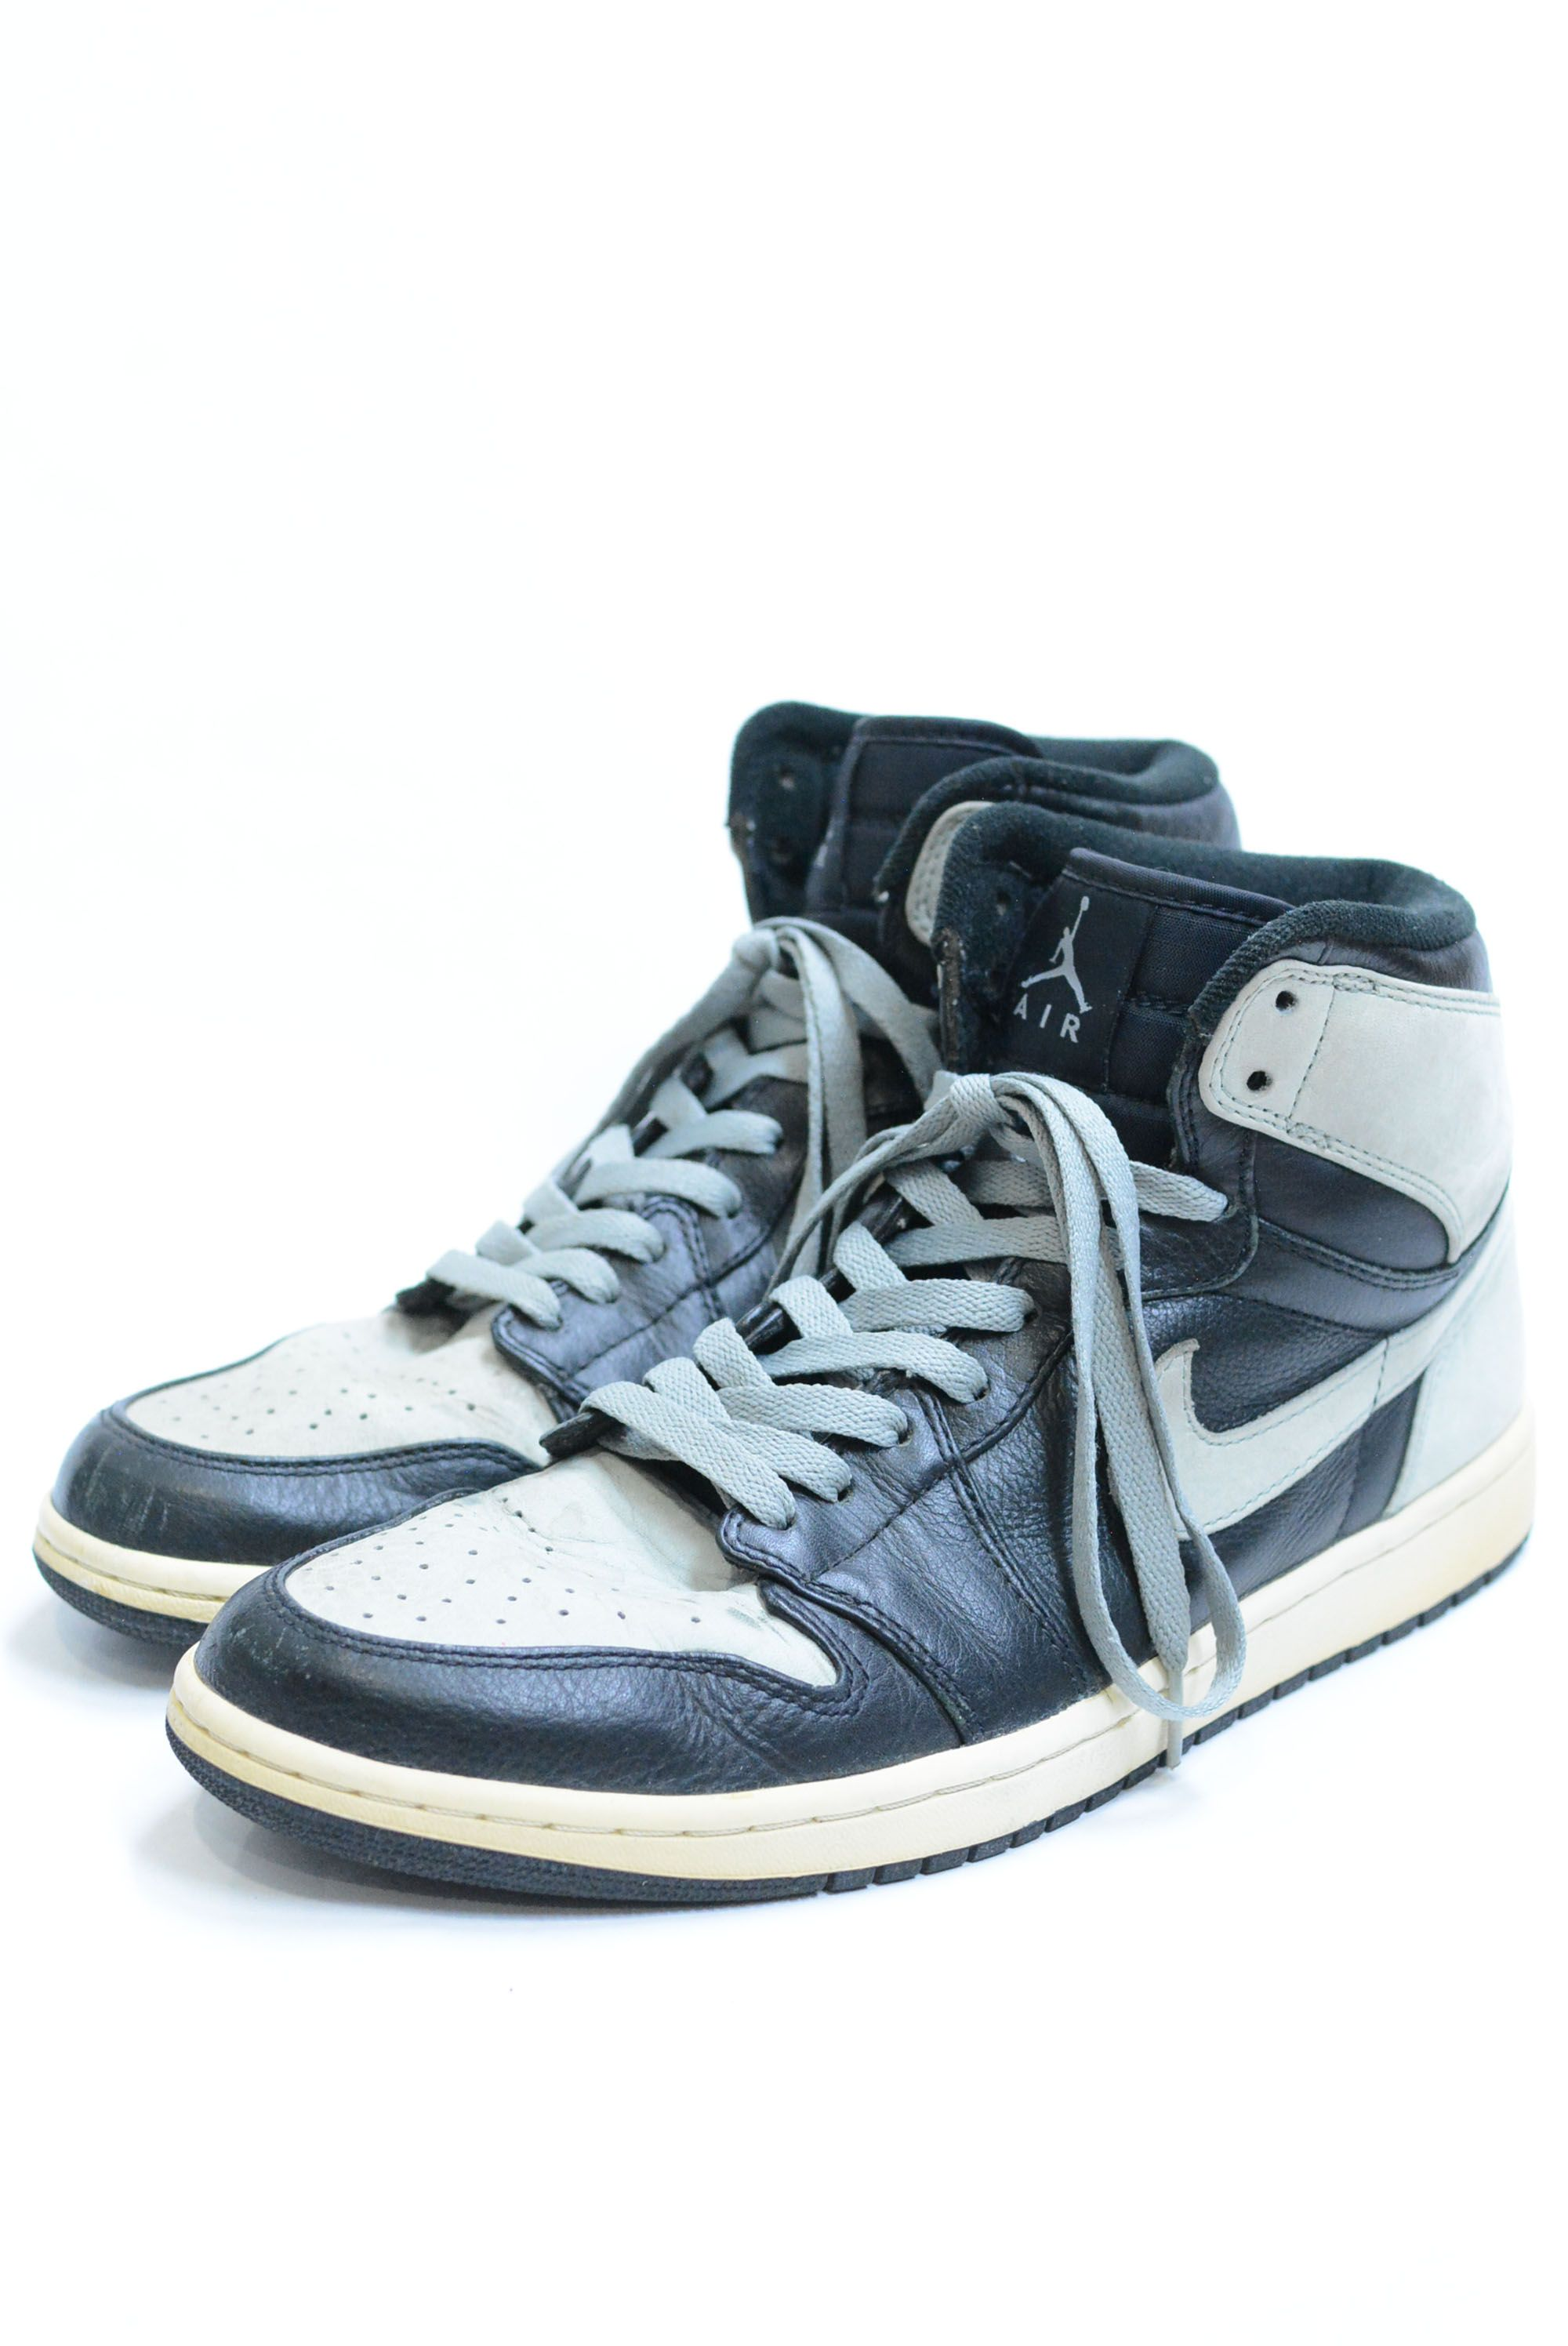 1 Jordan Retro Shadowused Nike Air amp;vintage Og High 2009年製 tCsQxdrh